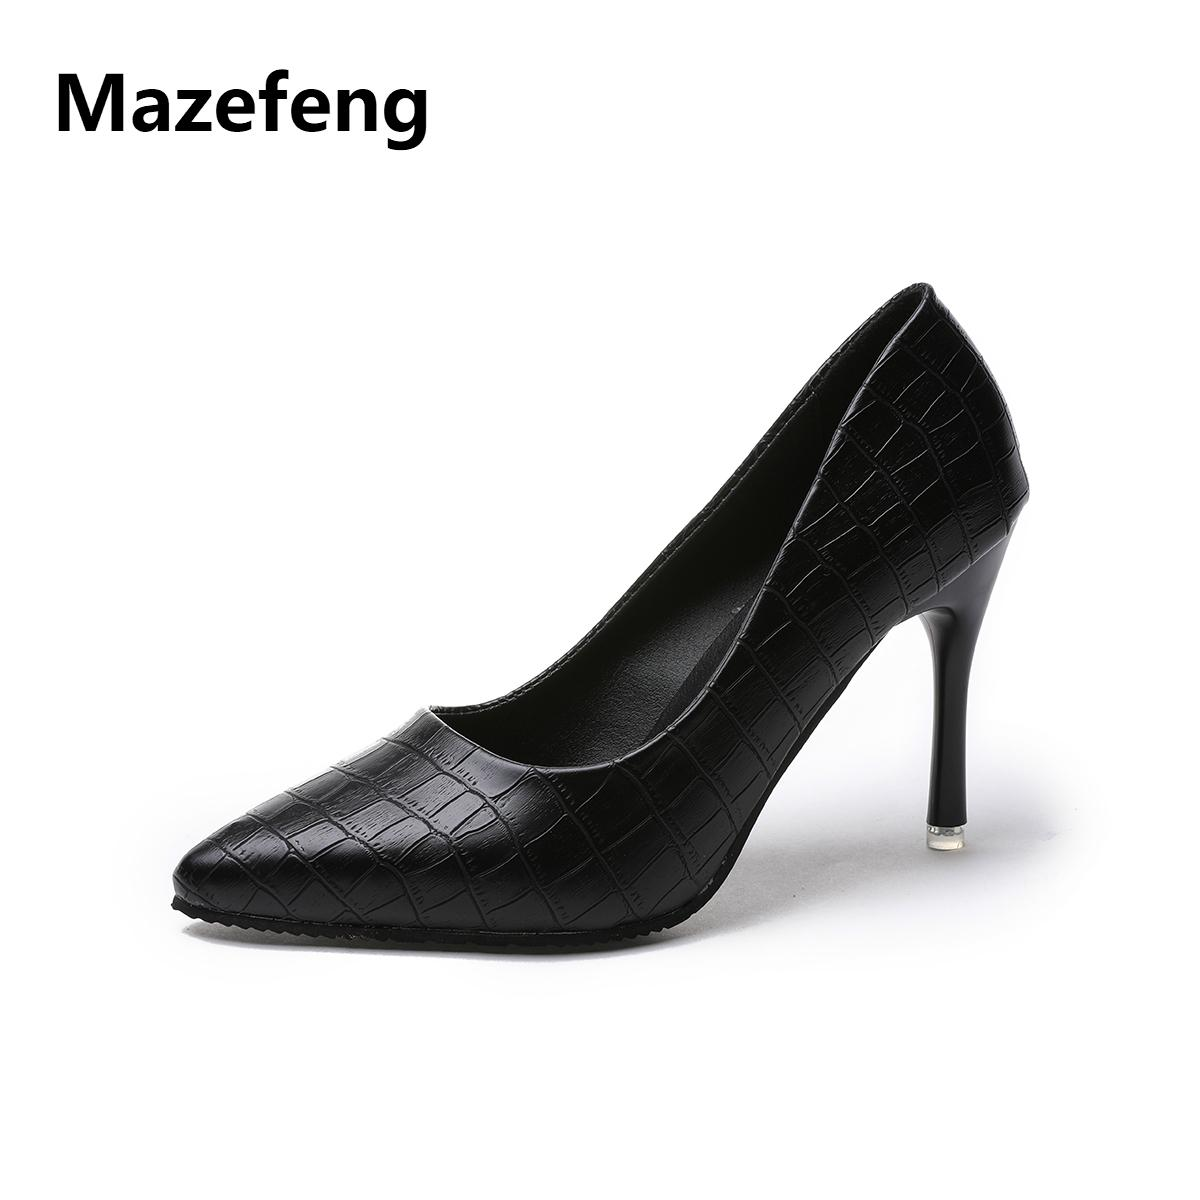 3413ba9520e Shoes Mazefeng New Fashion Summer Women High Heeled Women Casual Pumps  Office Ladies Thin Heel Pumps Classic Style Shallow Comfortable Shoes Slip  On Shoes ...